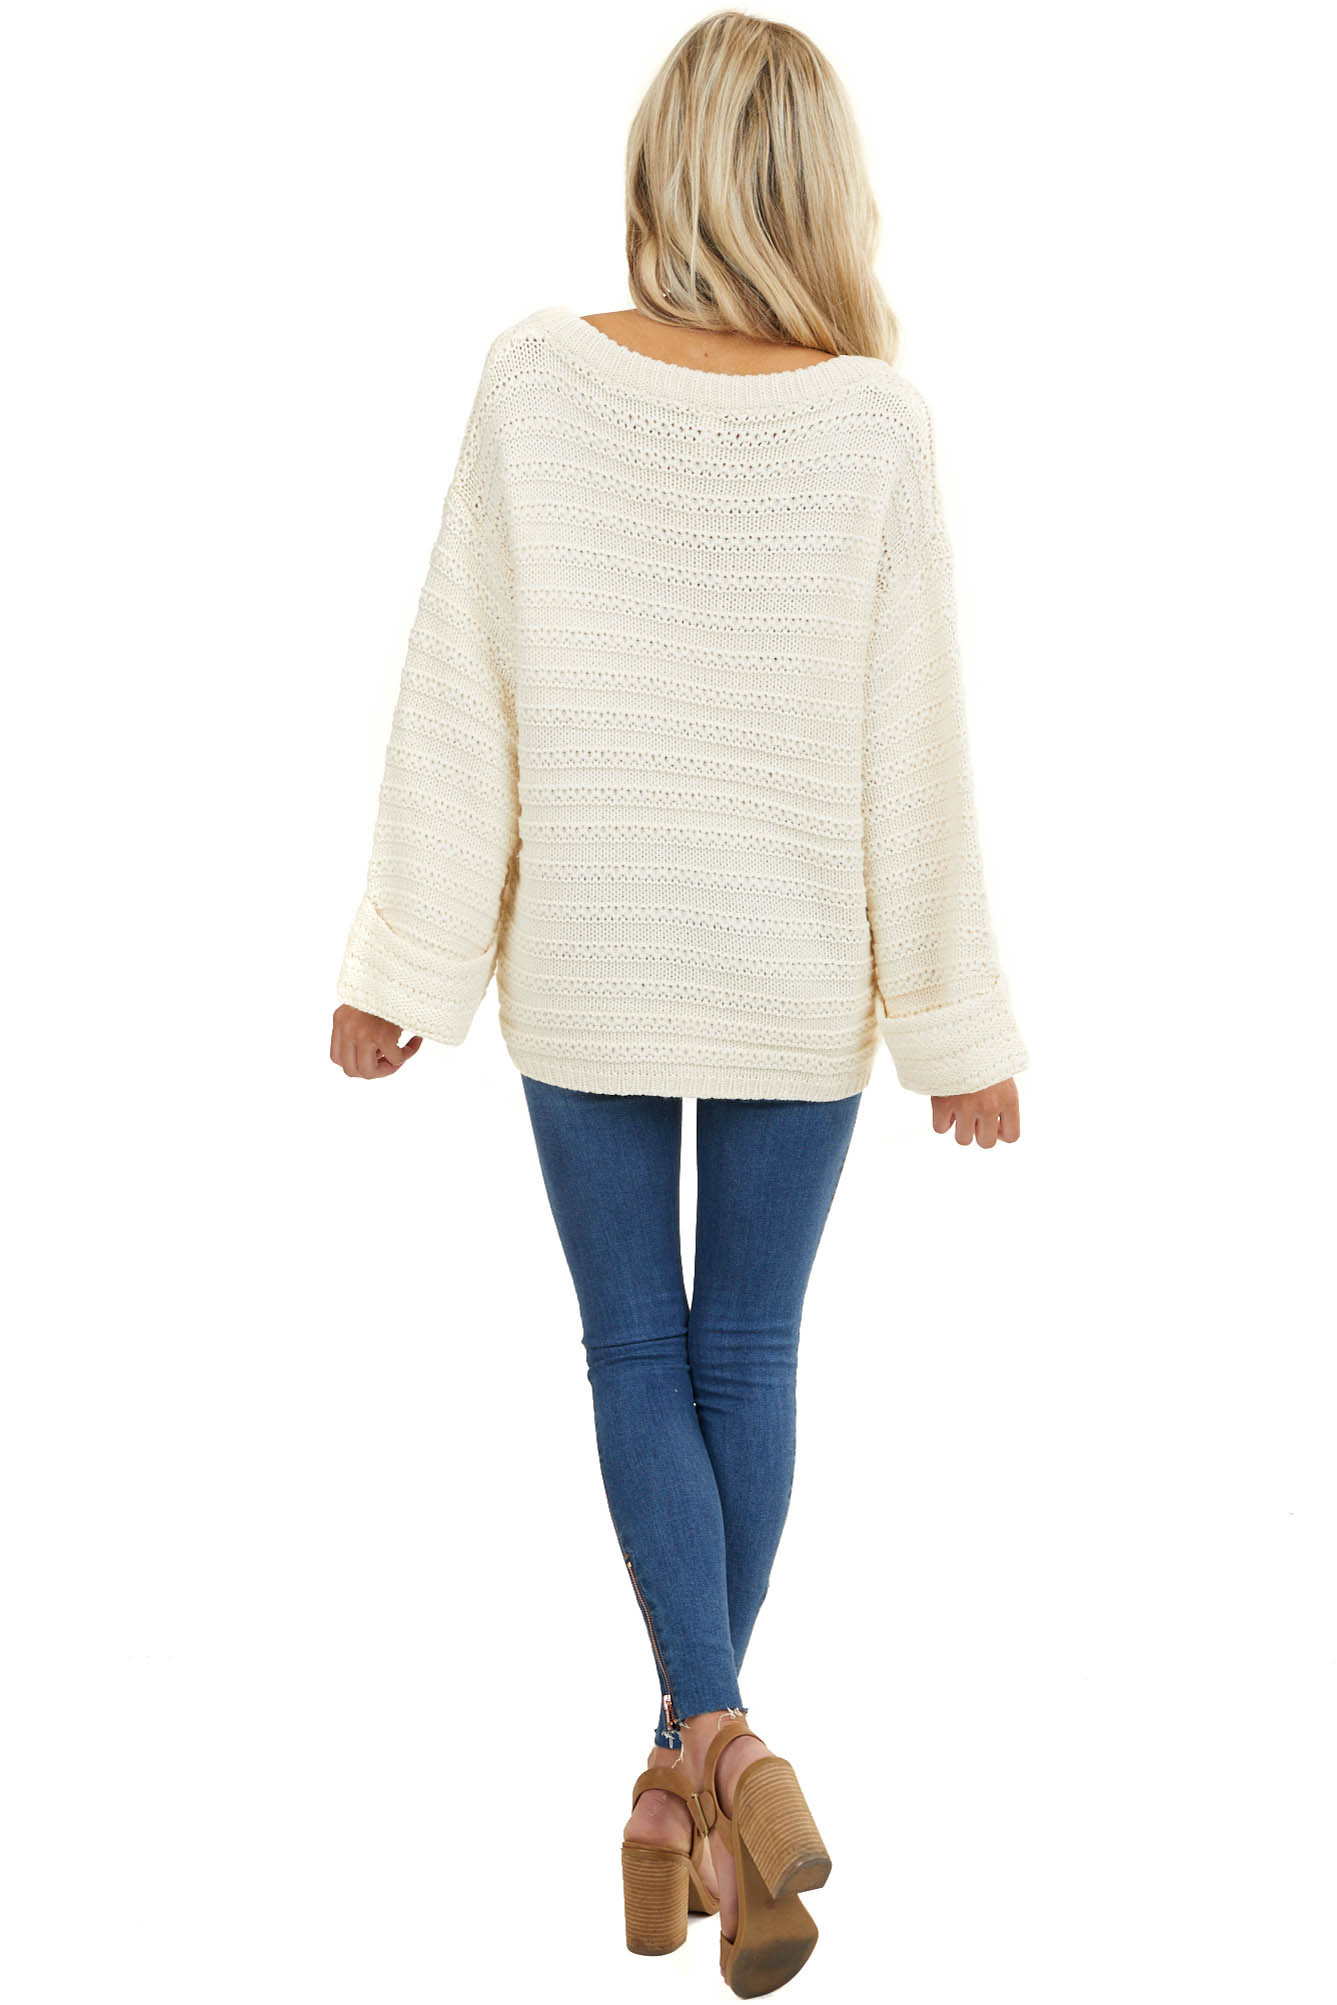 Cream Oversized V Neck Sweater with Cuffed Bell Sleeves